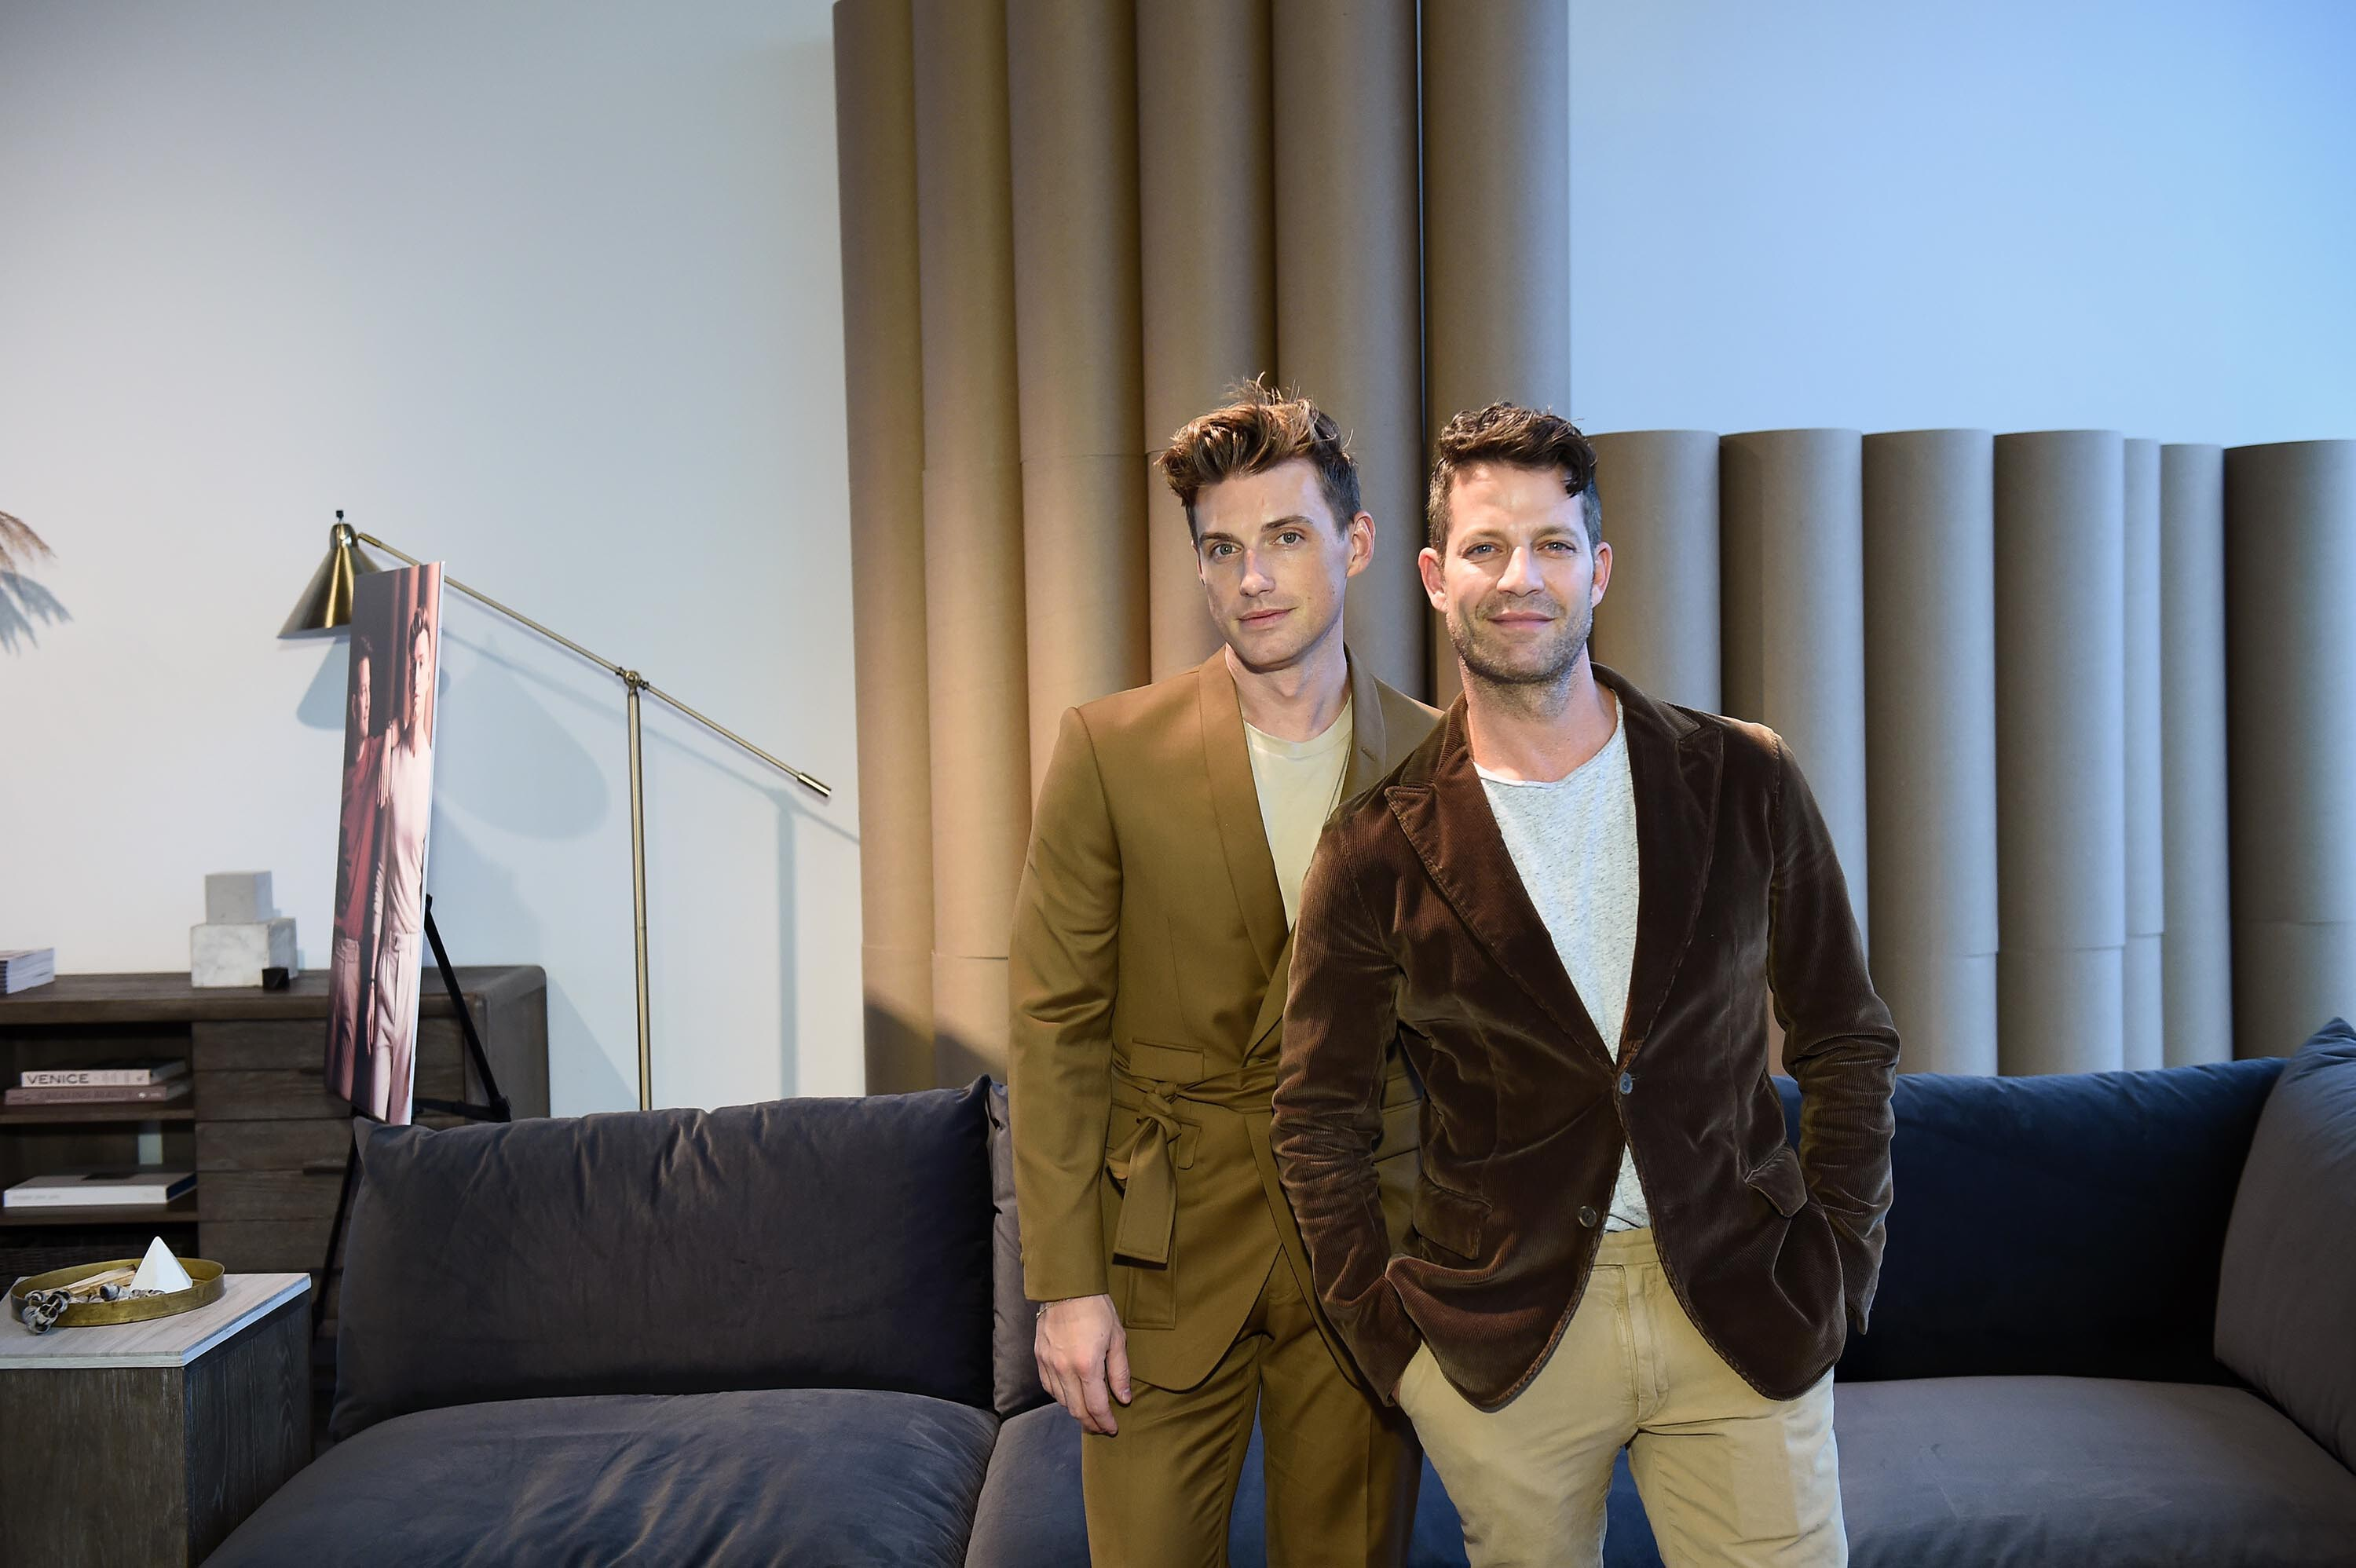 Nate Berkus and Jeremiah Brent's new home renovation show has real heart